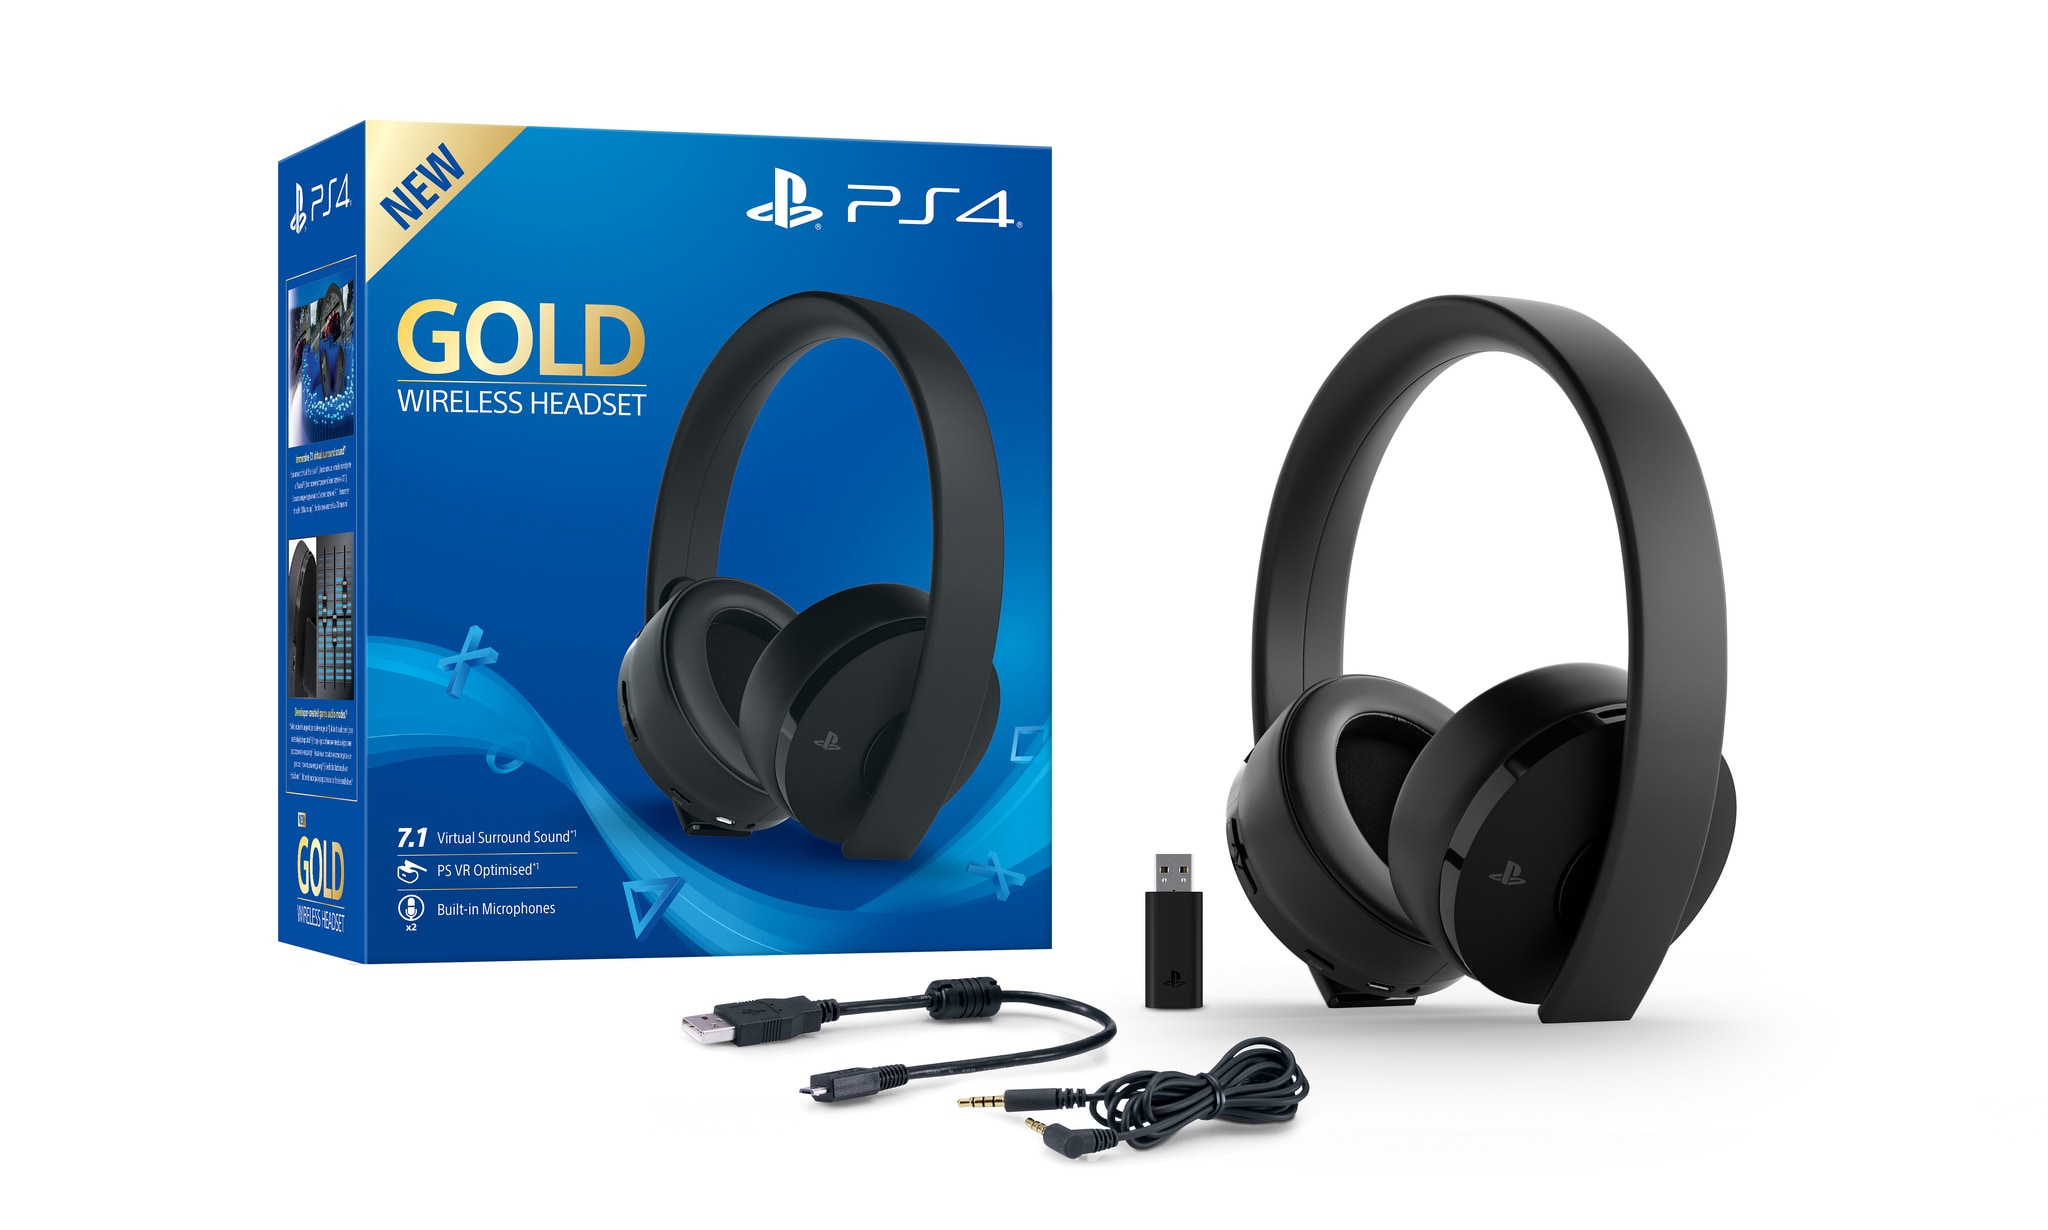 Sony-playstation-Gold-Wireless-Headset-1